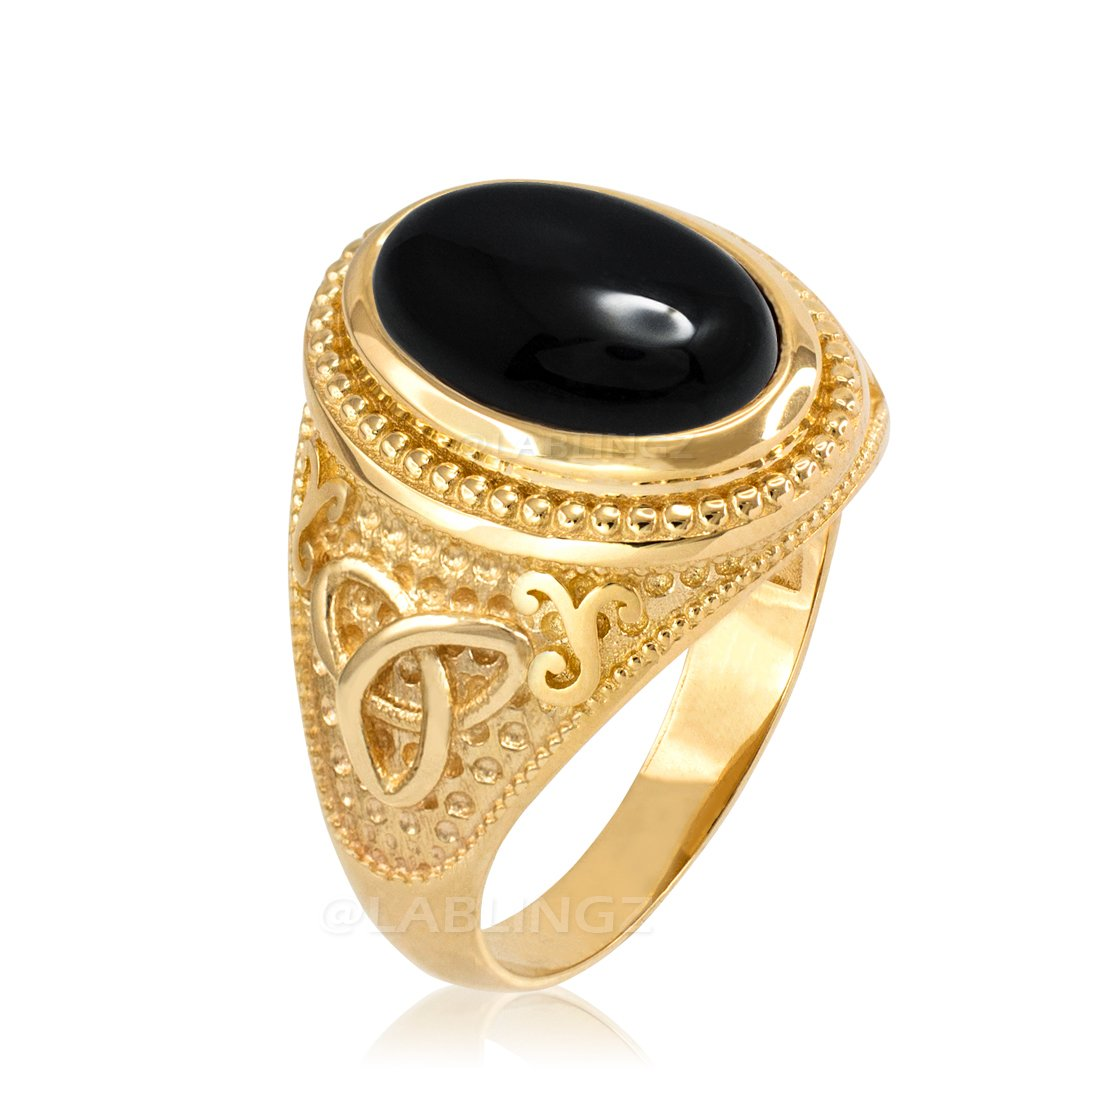 10K Yellow Gold Celtic Black Onyx Gemstone Statement Ring (8)